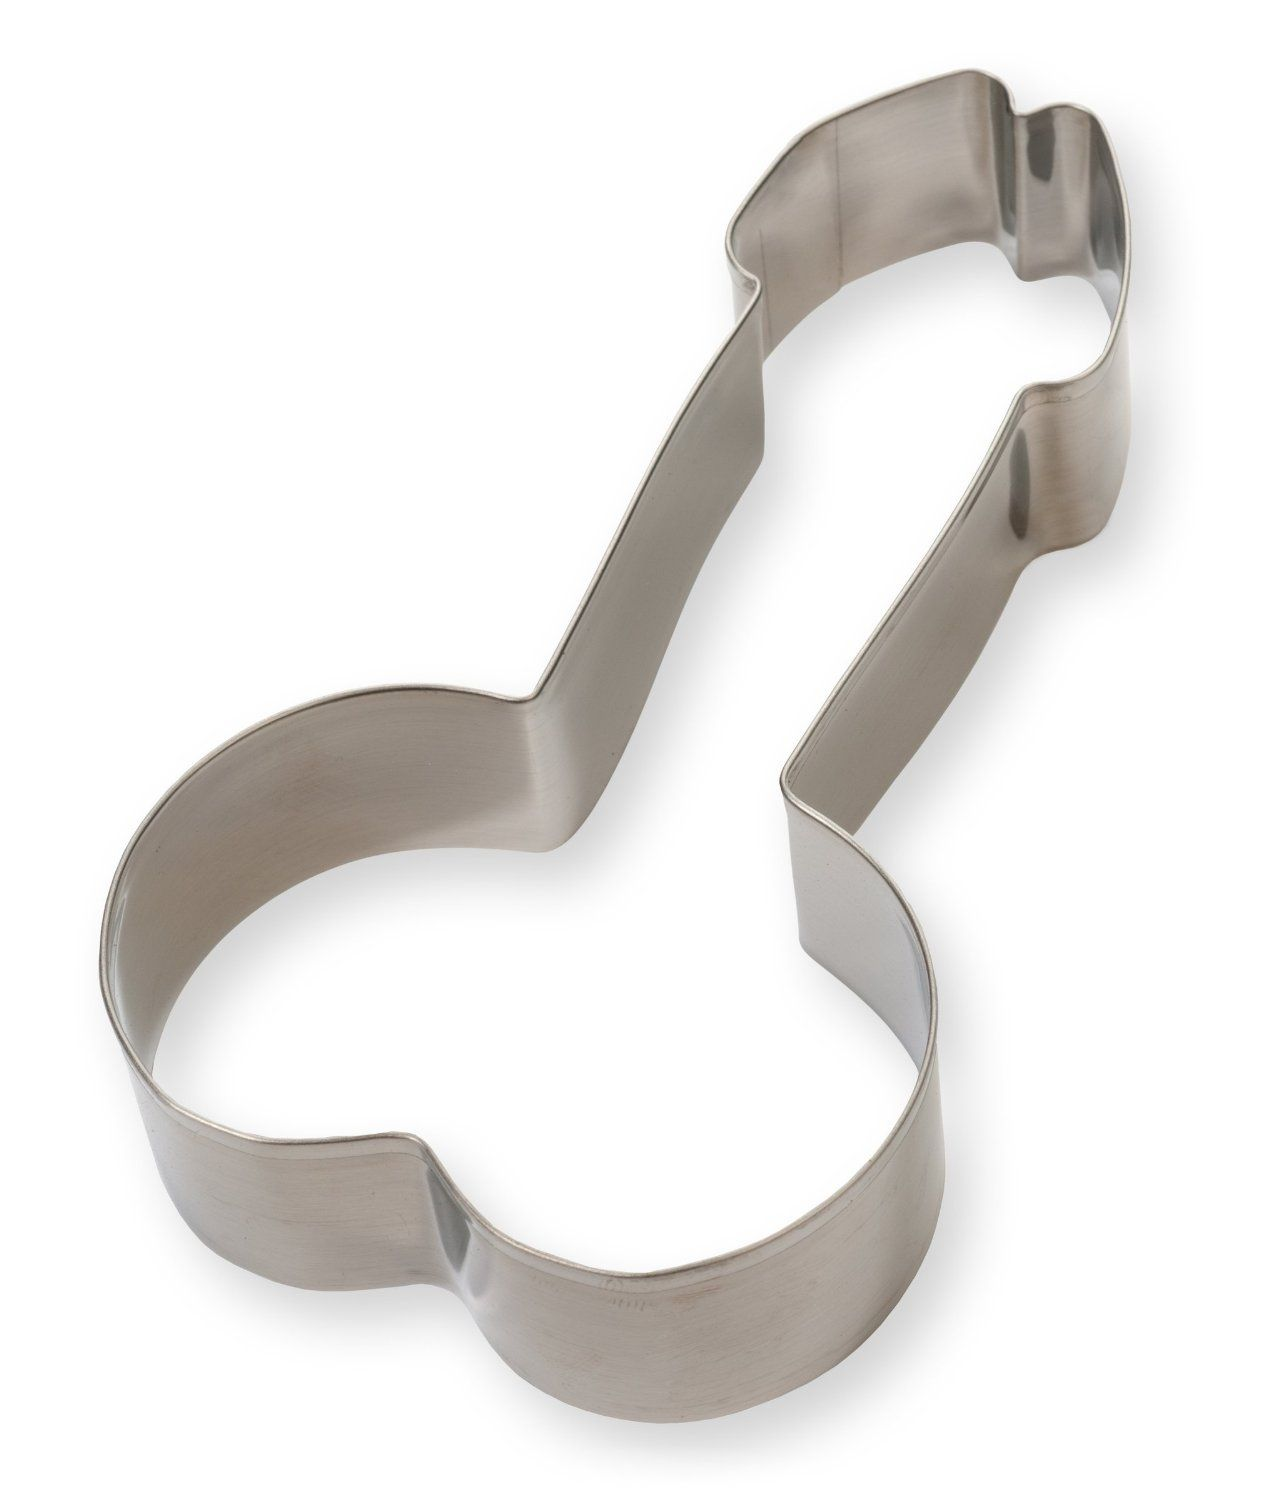 Teeny Peenie Stainless Steel Bachelorette Party Cookie Cutter